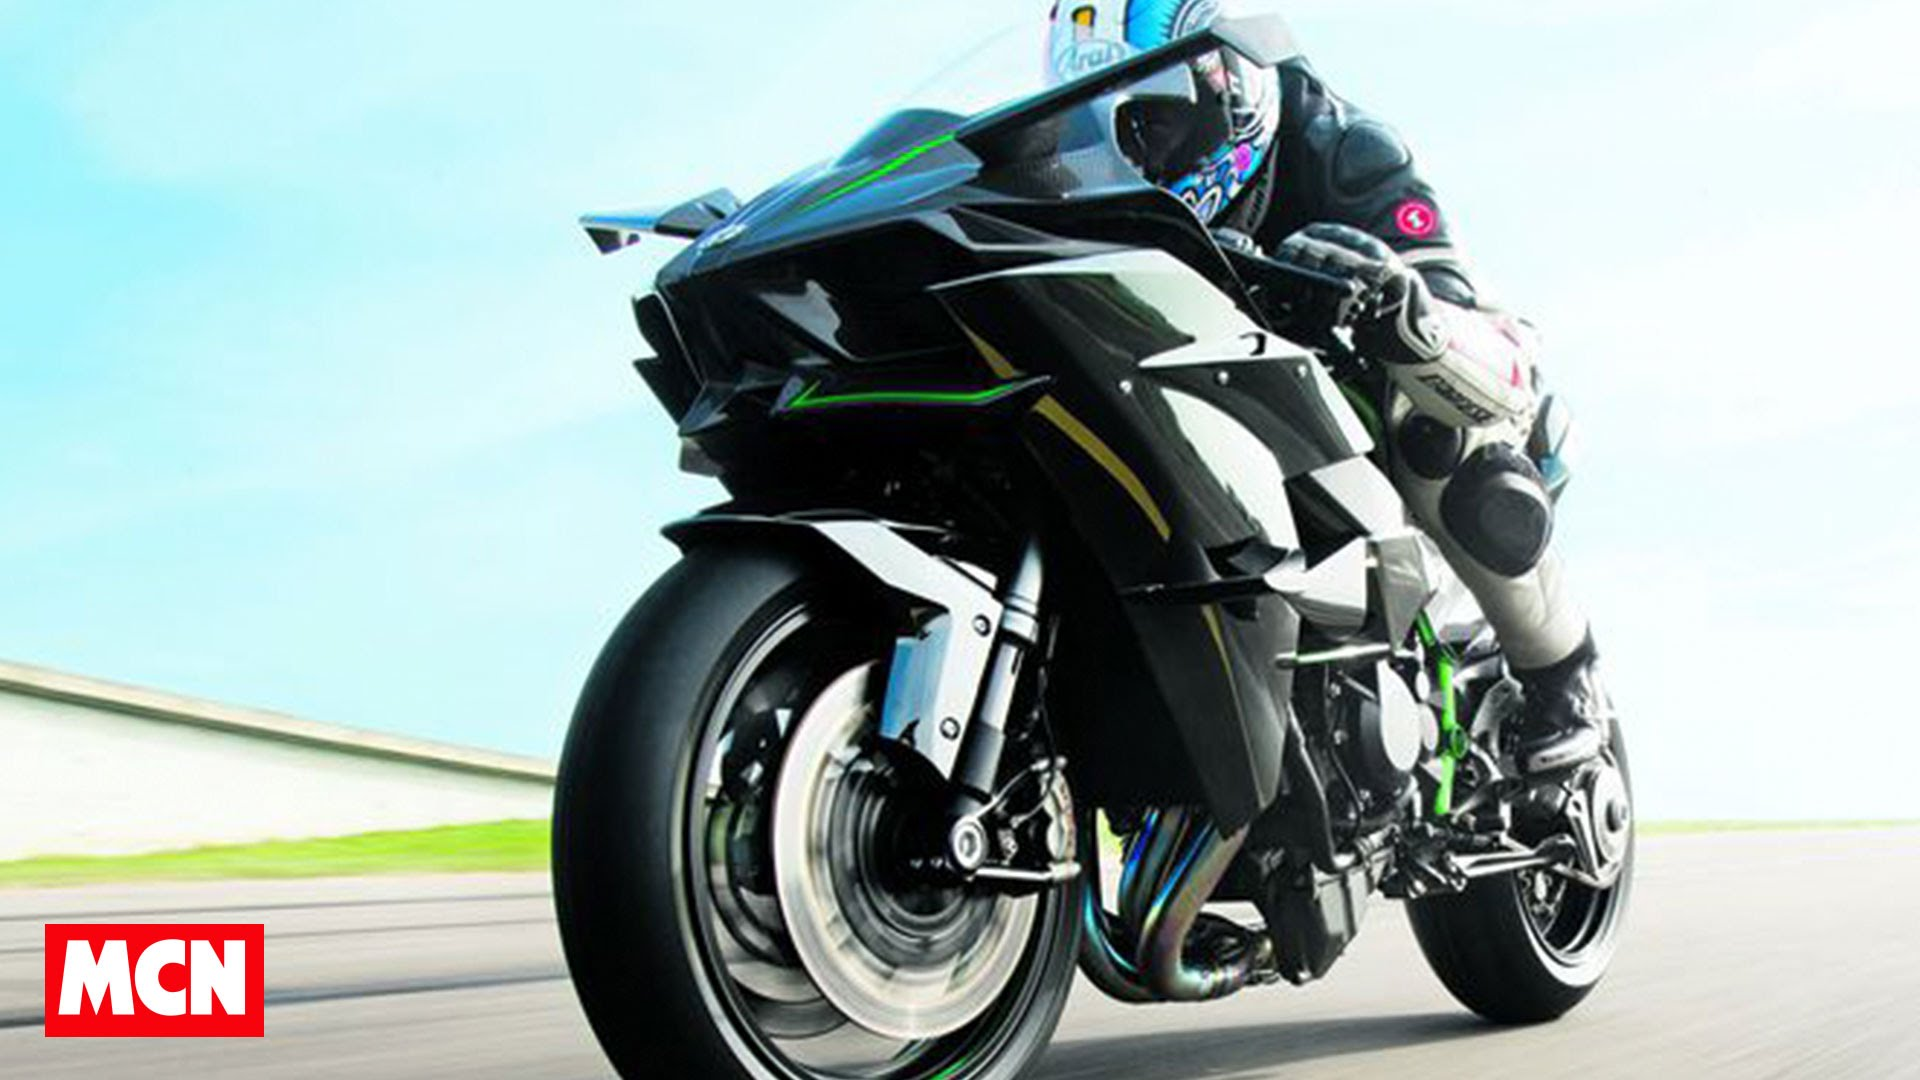 Kawasaki Ninja H2r Photo HD For Laptop